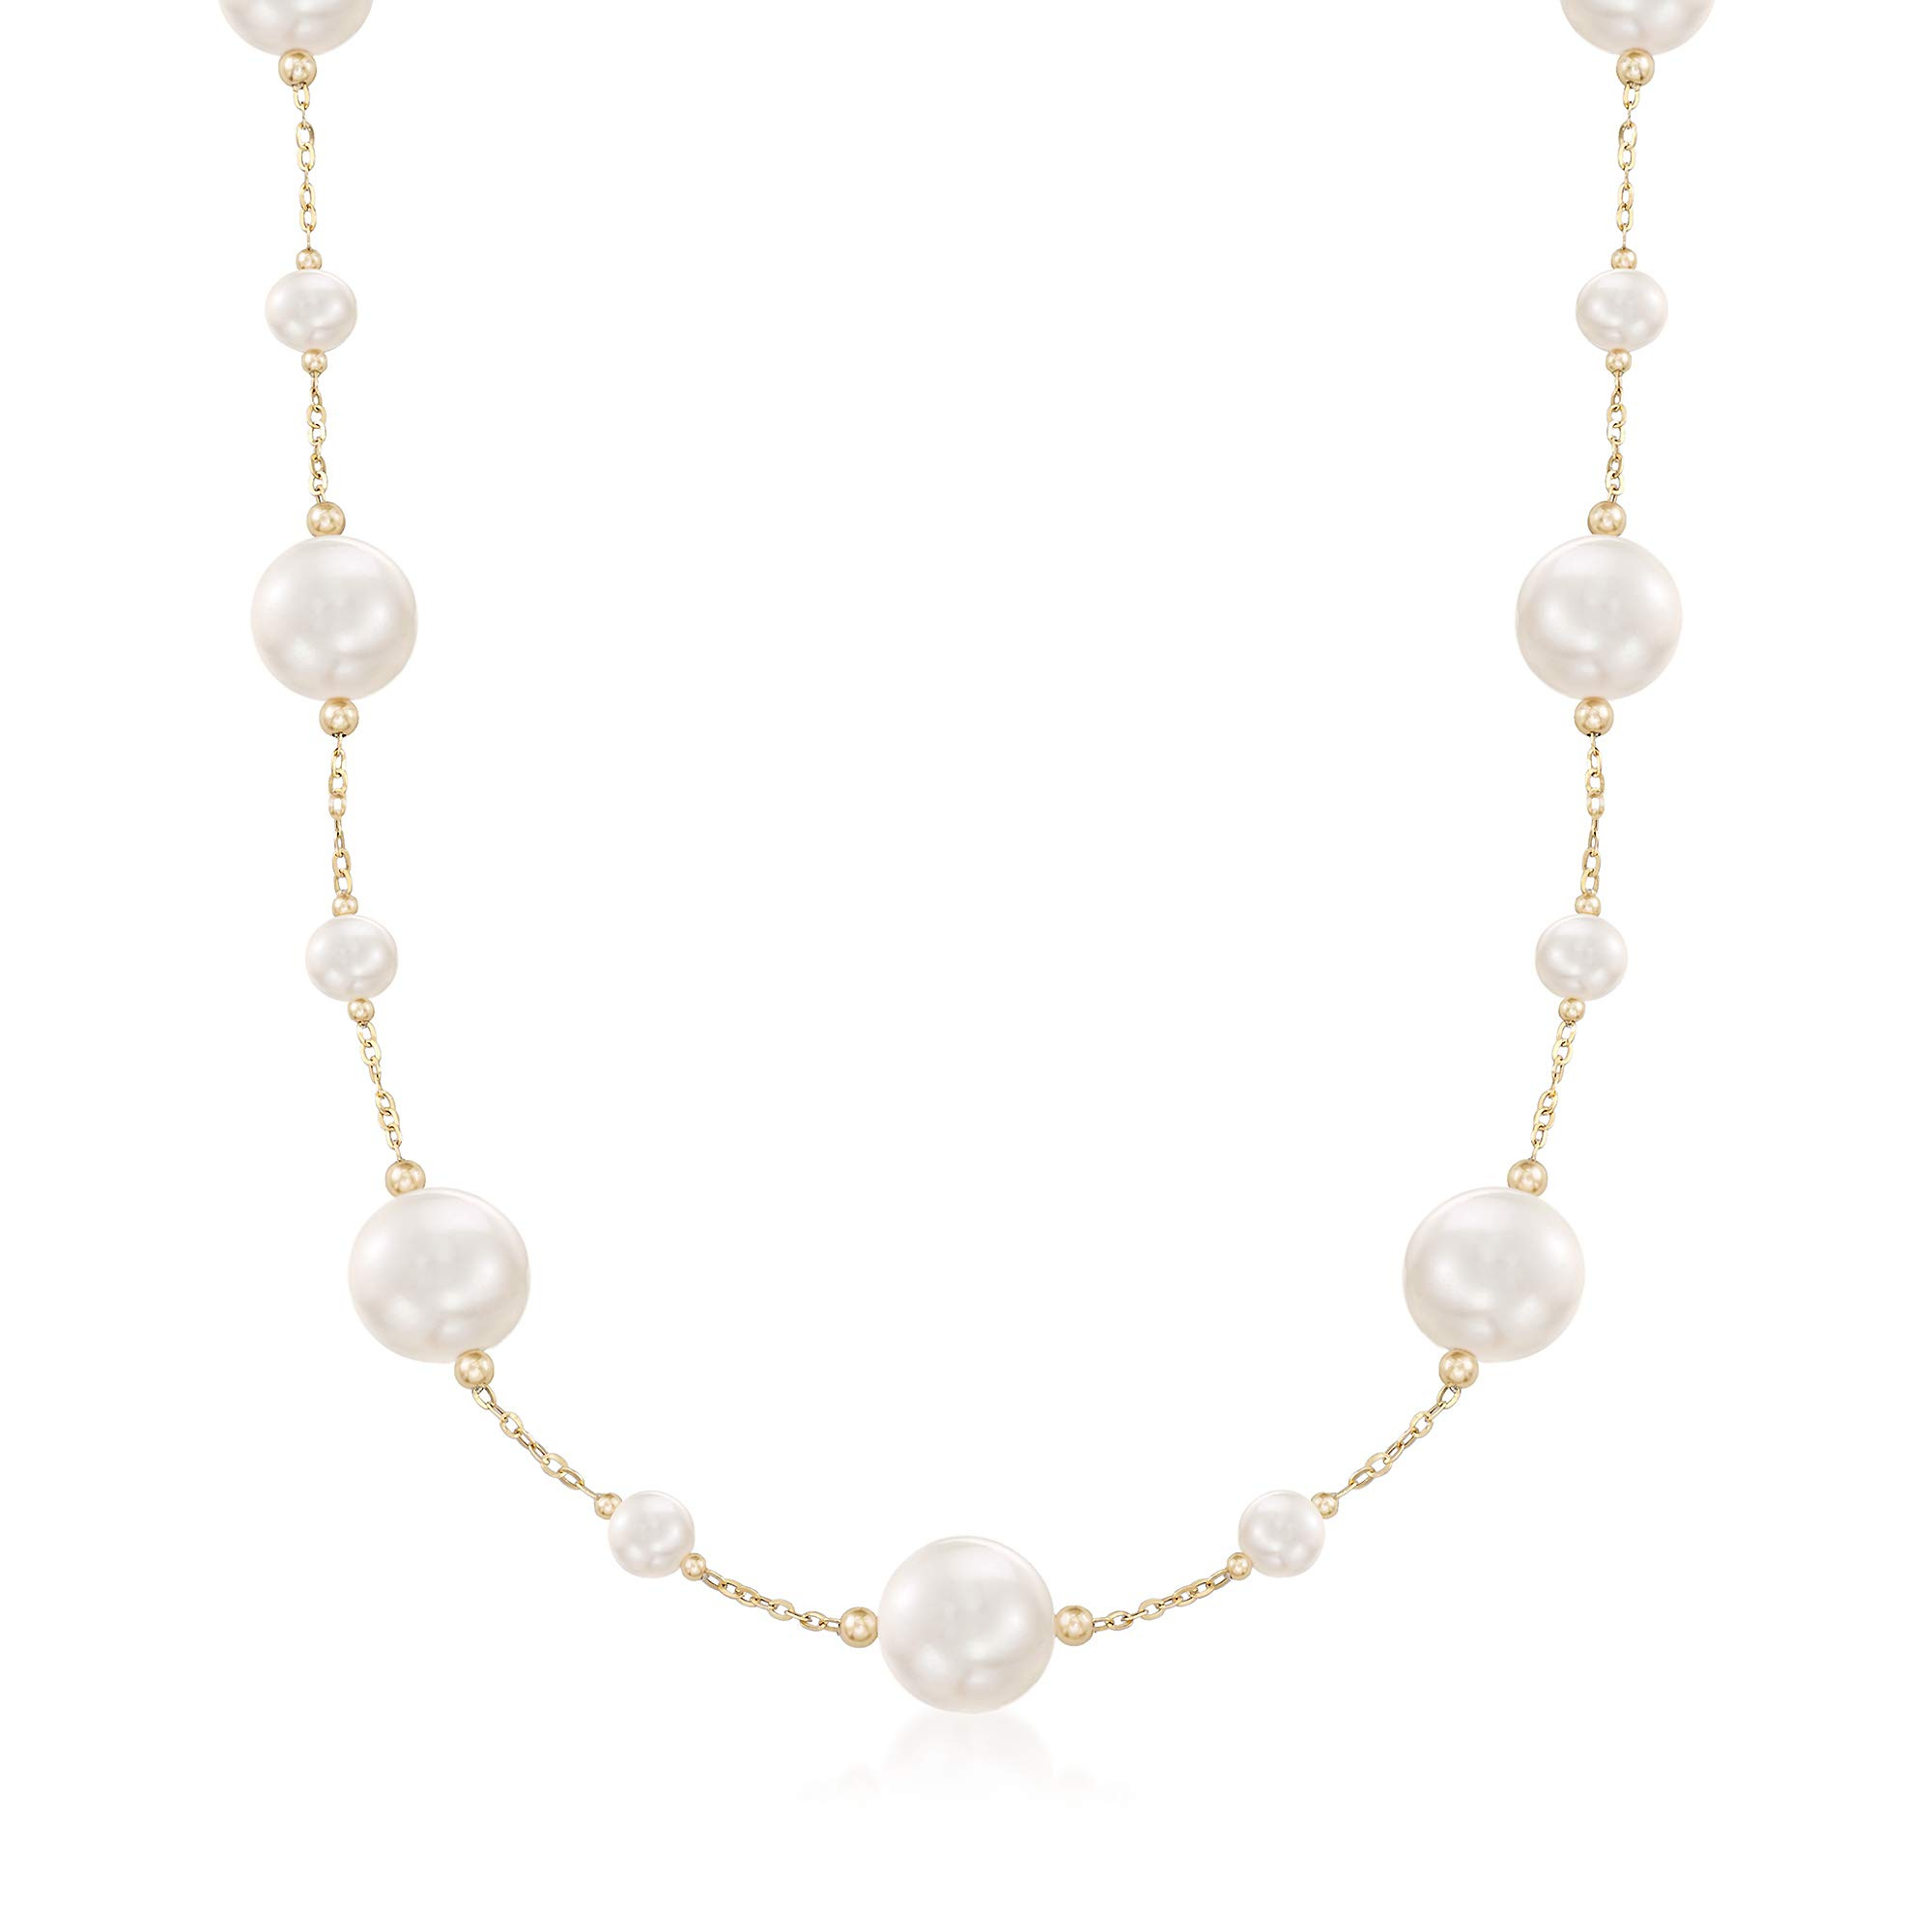 Ross-Simons 6-13mm Cultured Pearl Station Necklace in 14kt Yellow Gold